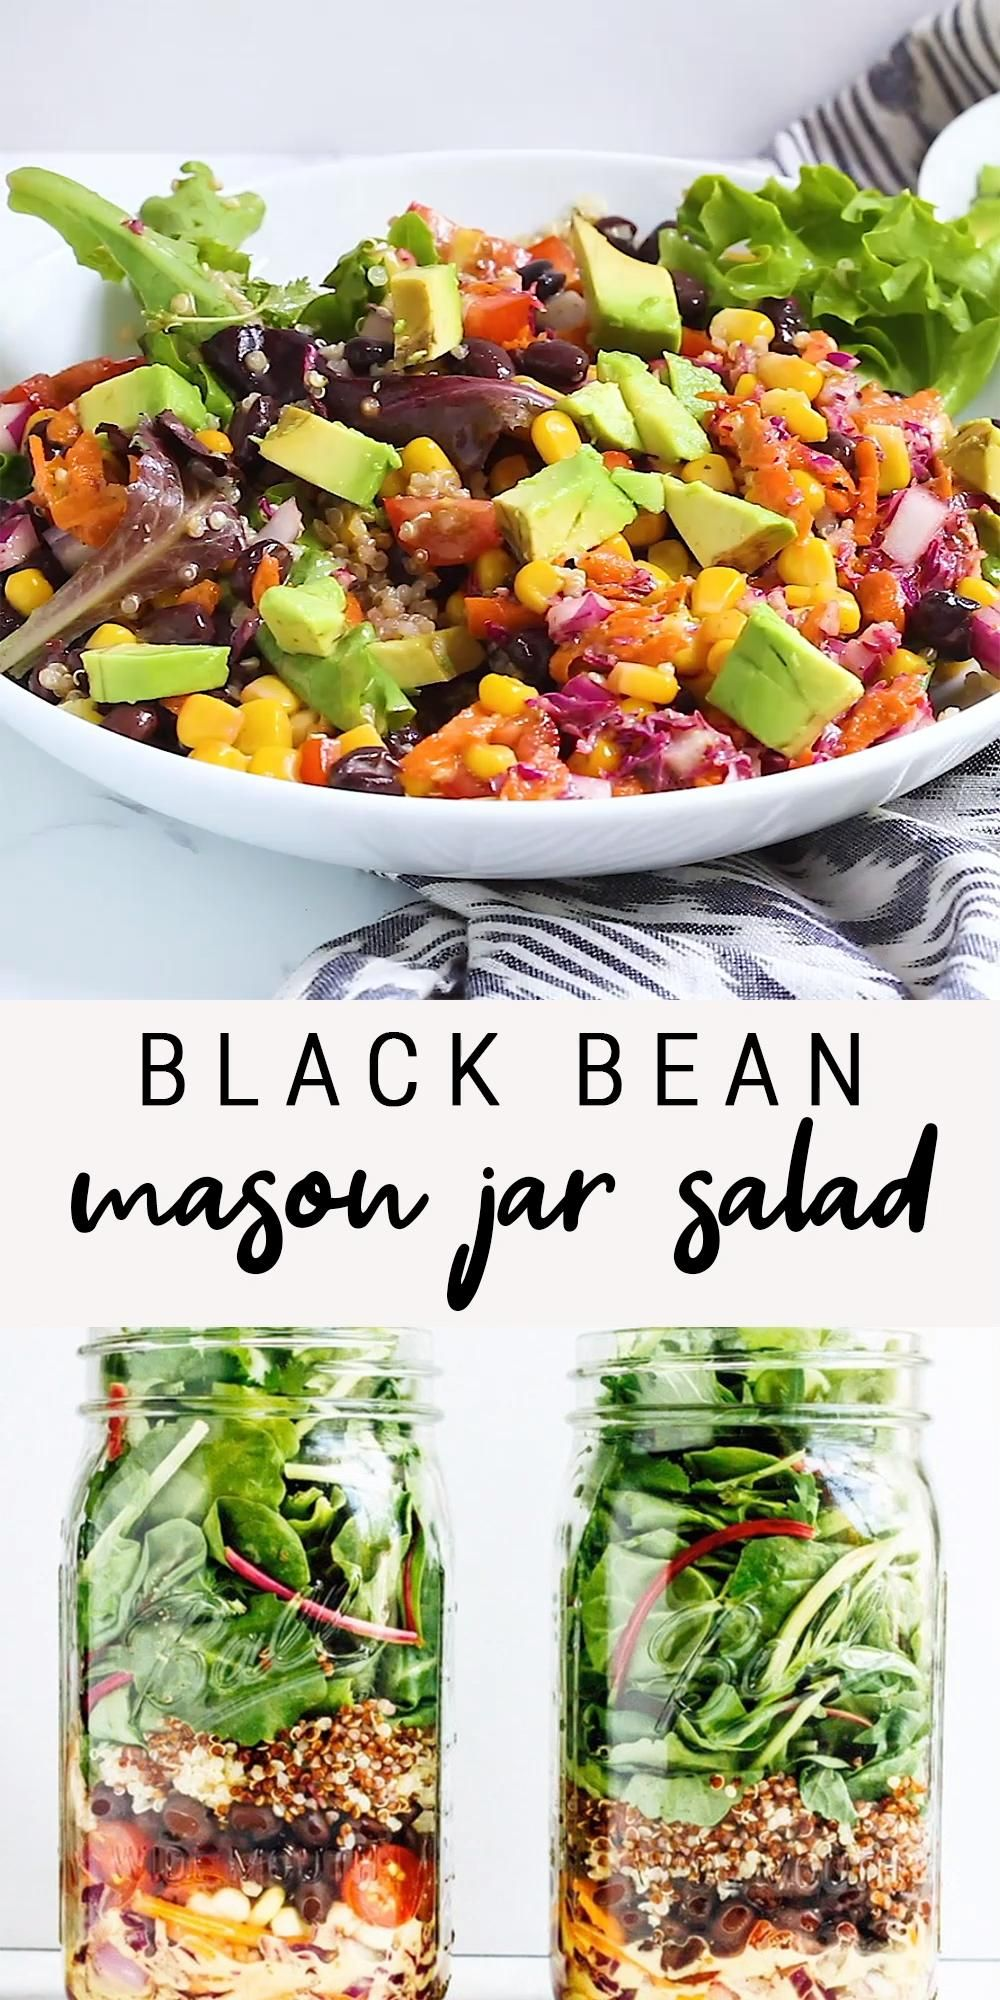 Photo of Black Bean Mason Jar Salad | Healthy + Vegan Meal Prep Recipe